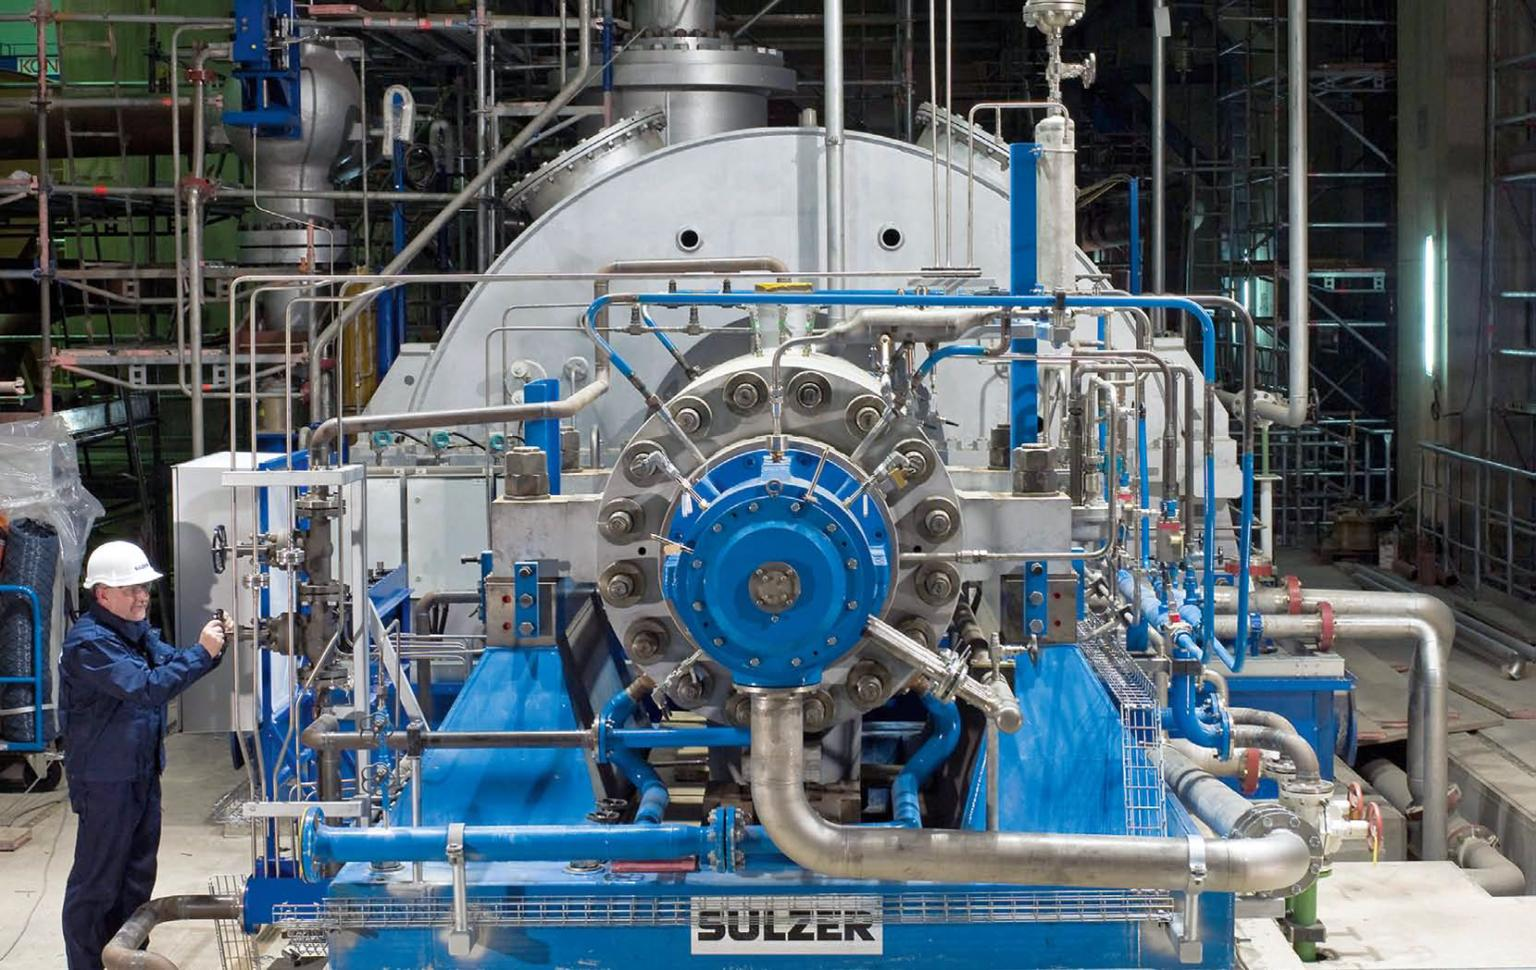 The turbine within a nuclear power plant requires considerable support from a number of pumps and motors that ensure the condensate water and cooling water systems are maintained properly